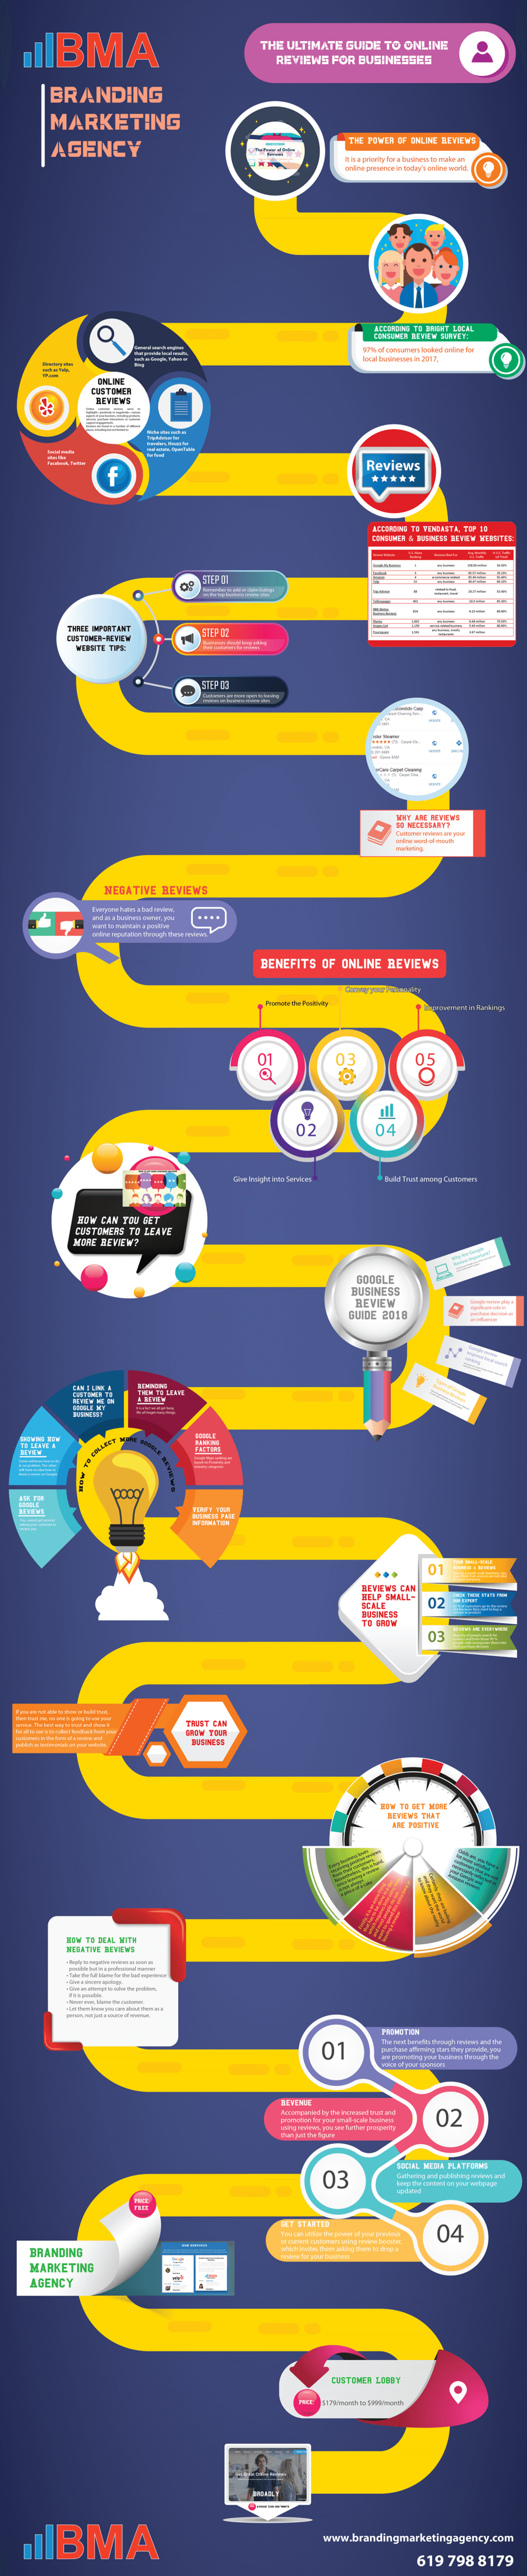 The Ultimate Guide To Online Reviews For Businesses Infographic